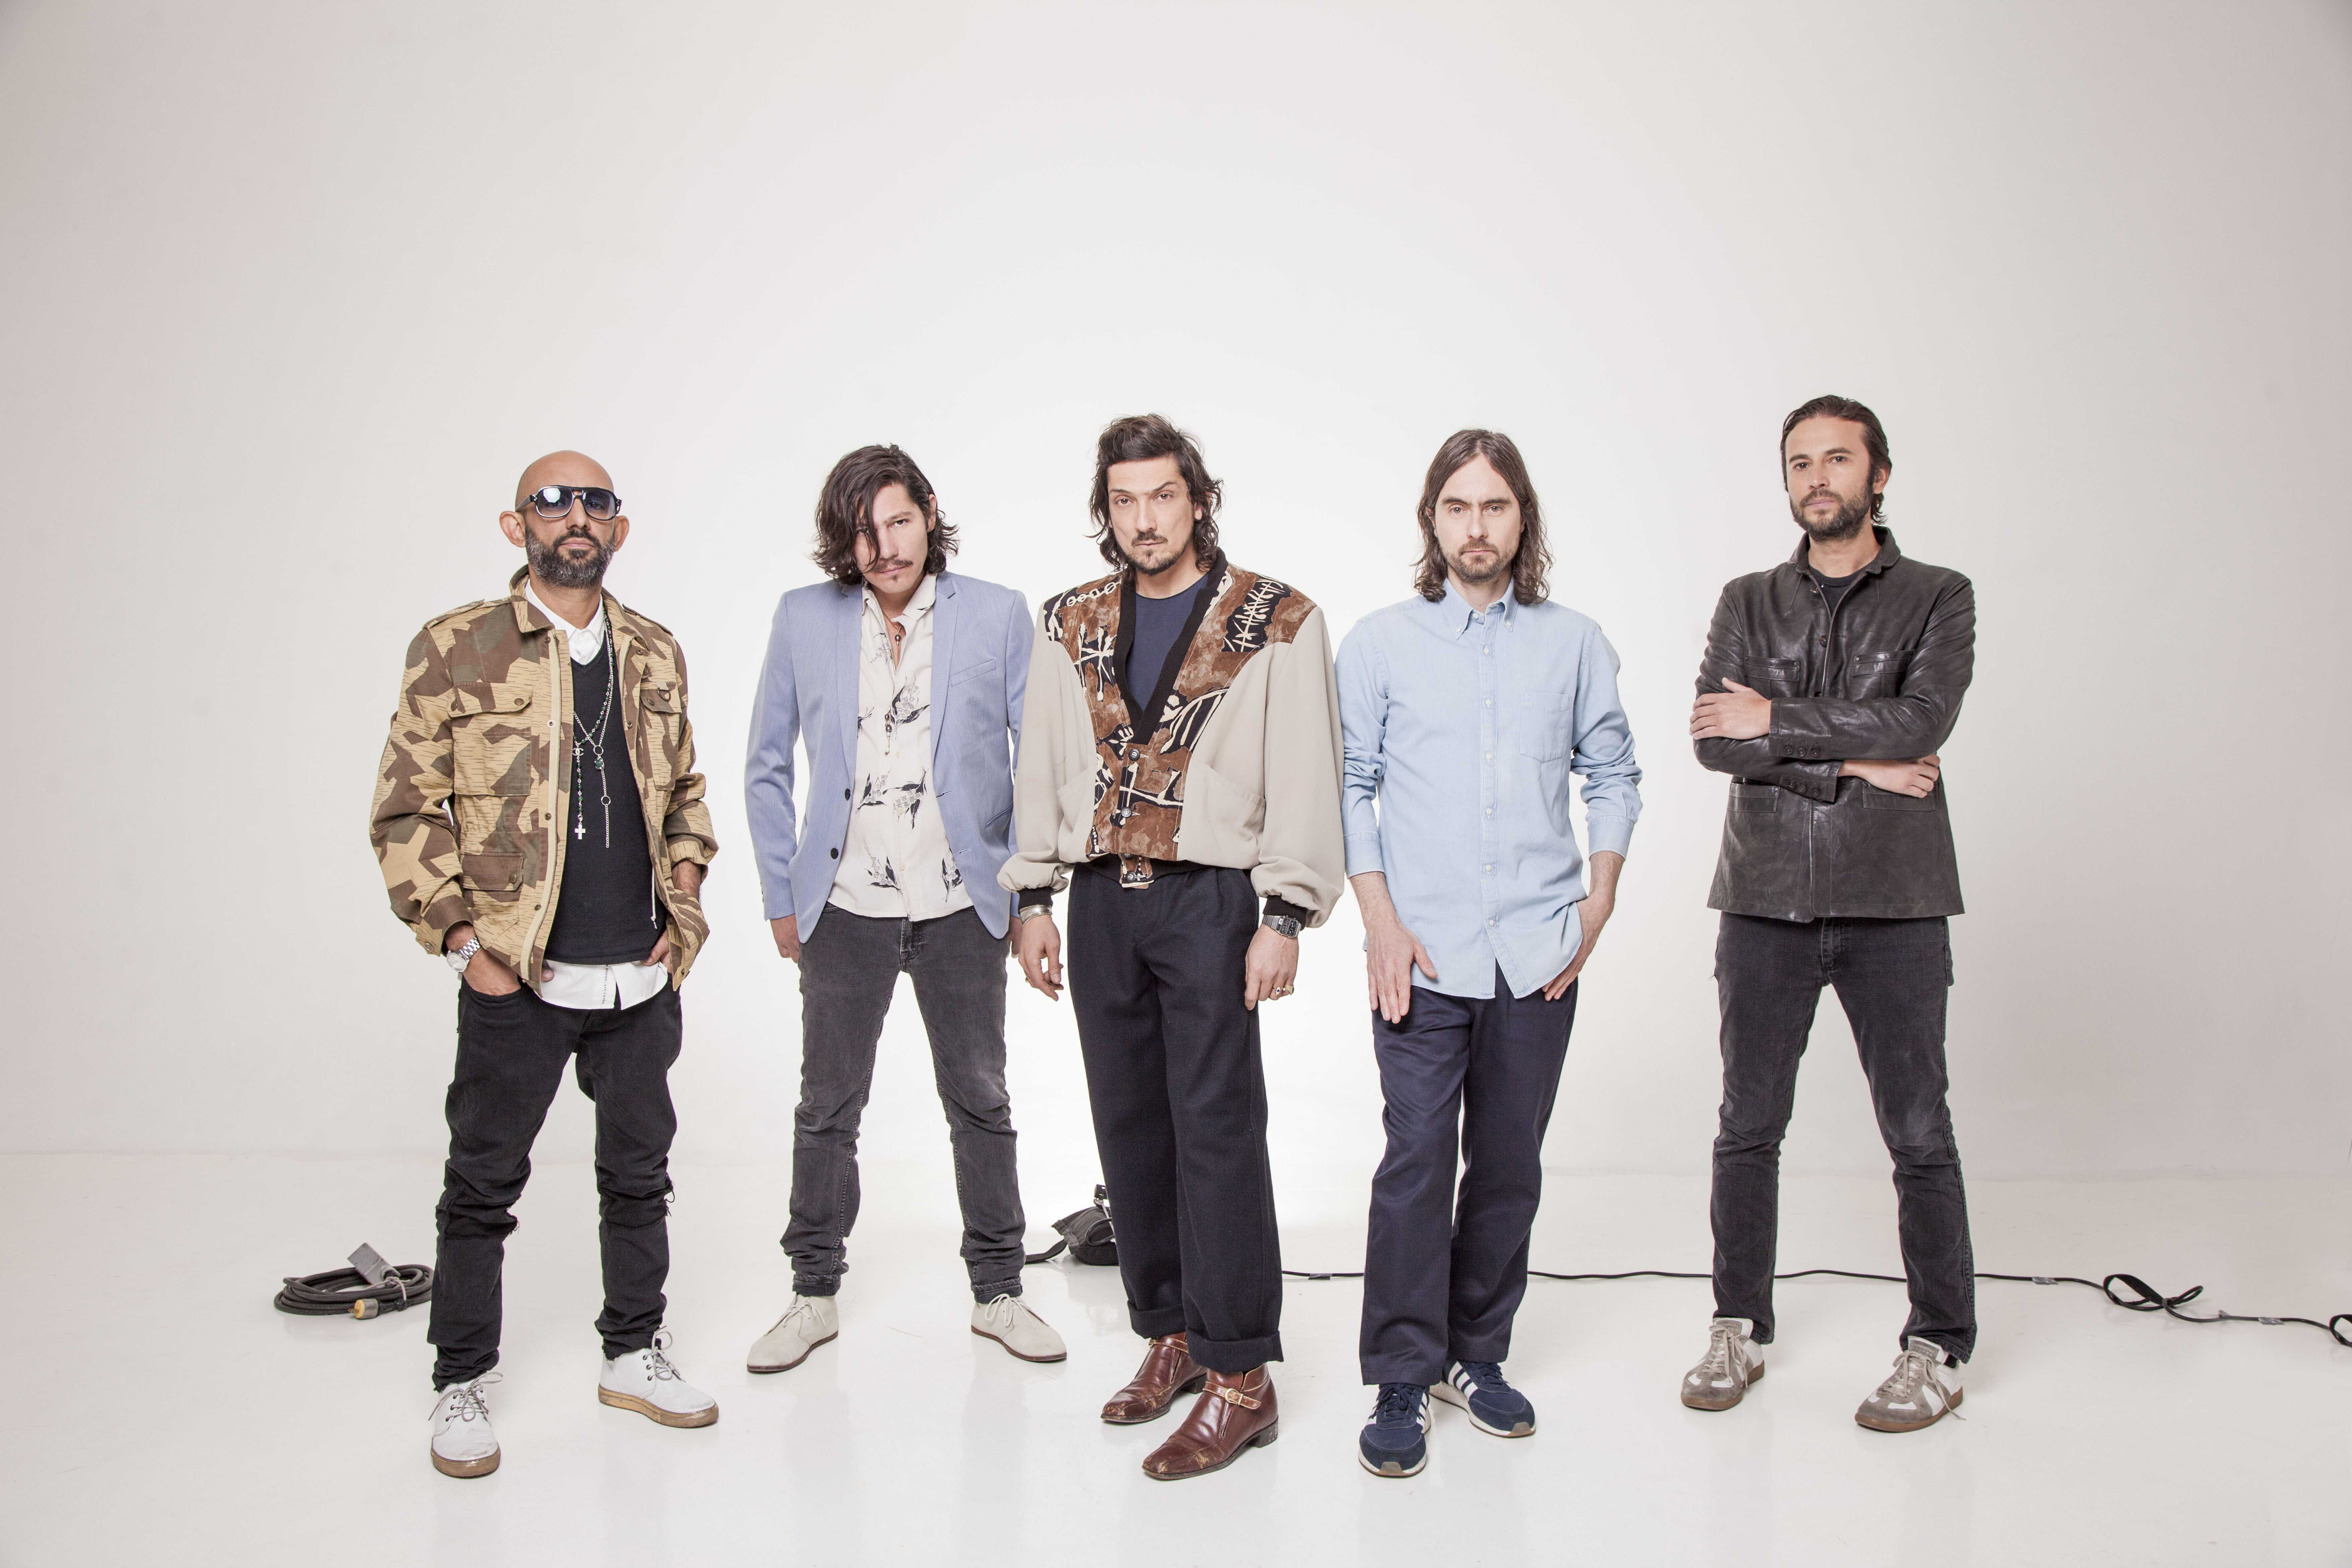 Band members of Mexican rock group, Zoé. From left to right: Jesus Baez, keyboards; Sergio Acosta, lead guitar; León Larregui, vocals; Rodrigo Guardiola, drums; and Angel Mosqueda, bass guitar. Photo credit: Courtesy of the band.